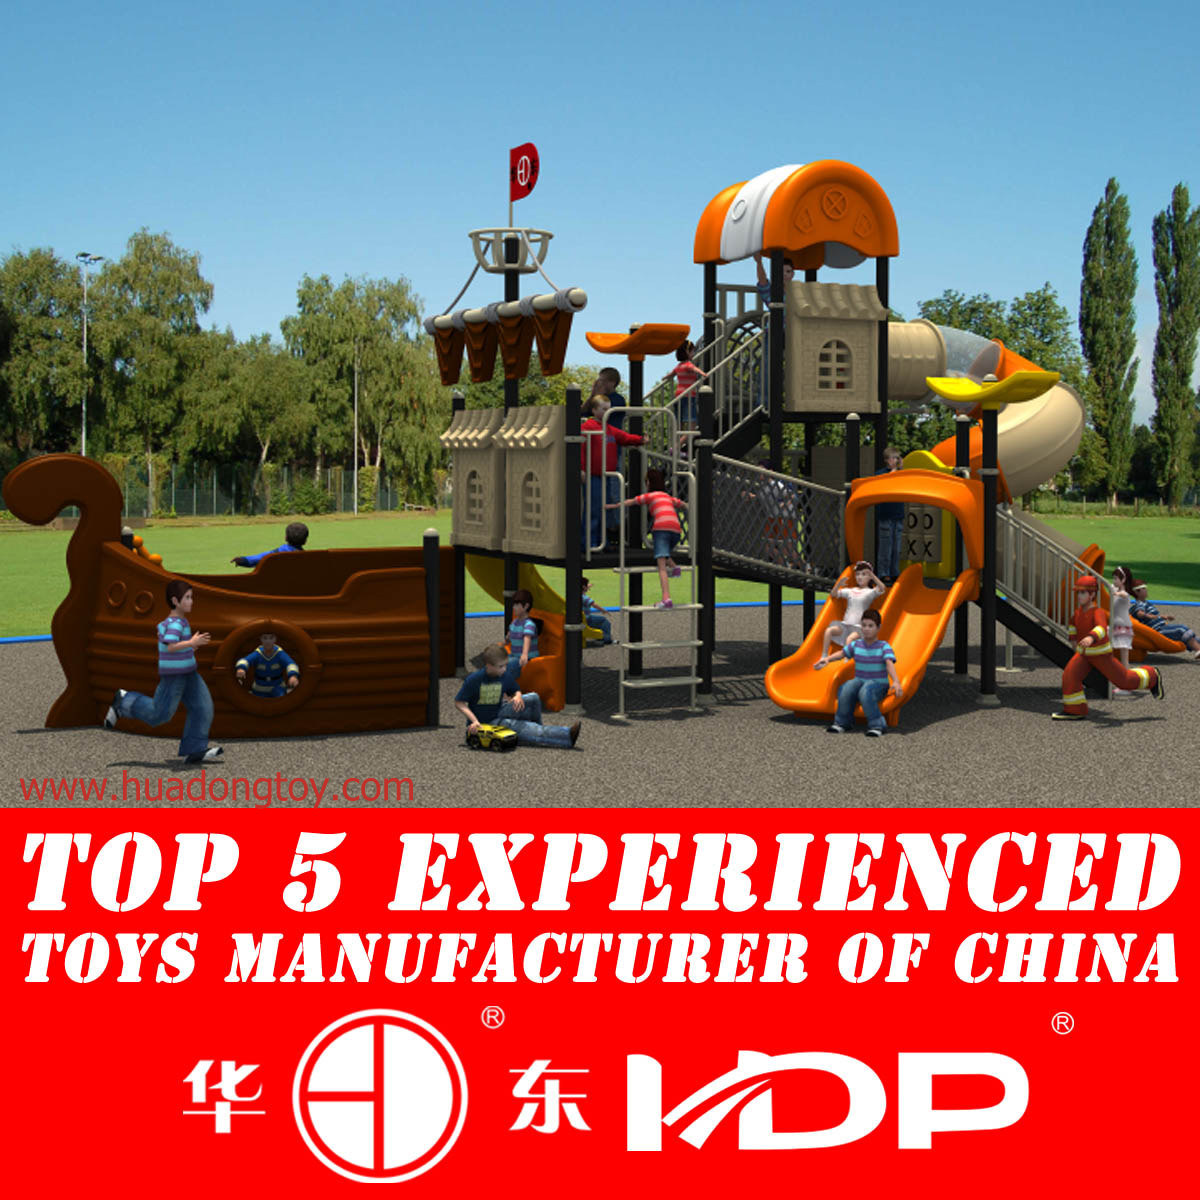 Pirate Theme Park Equipments Good for Parents and Kids Outdoor Park Playground